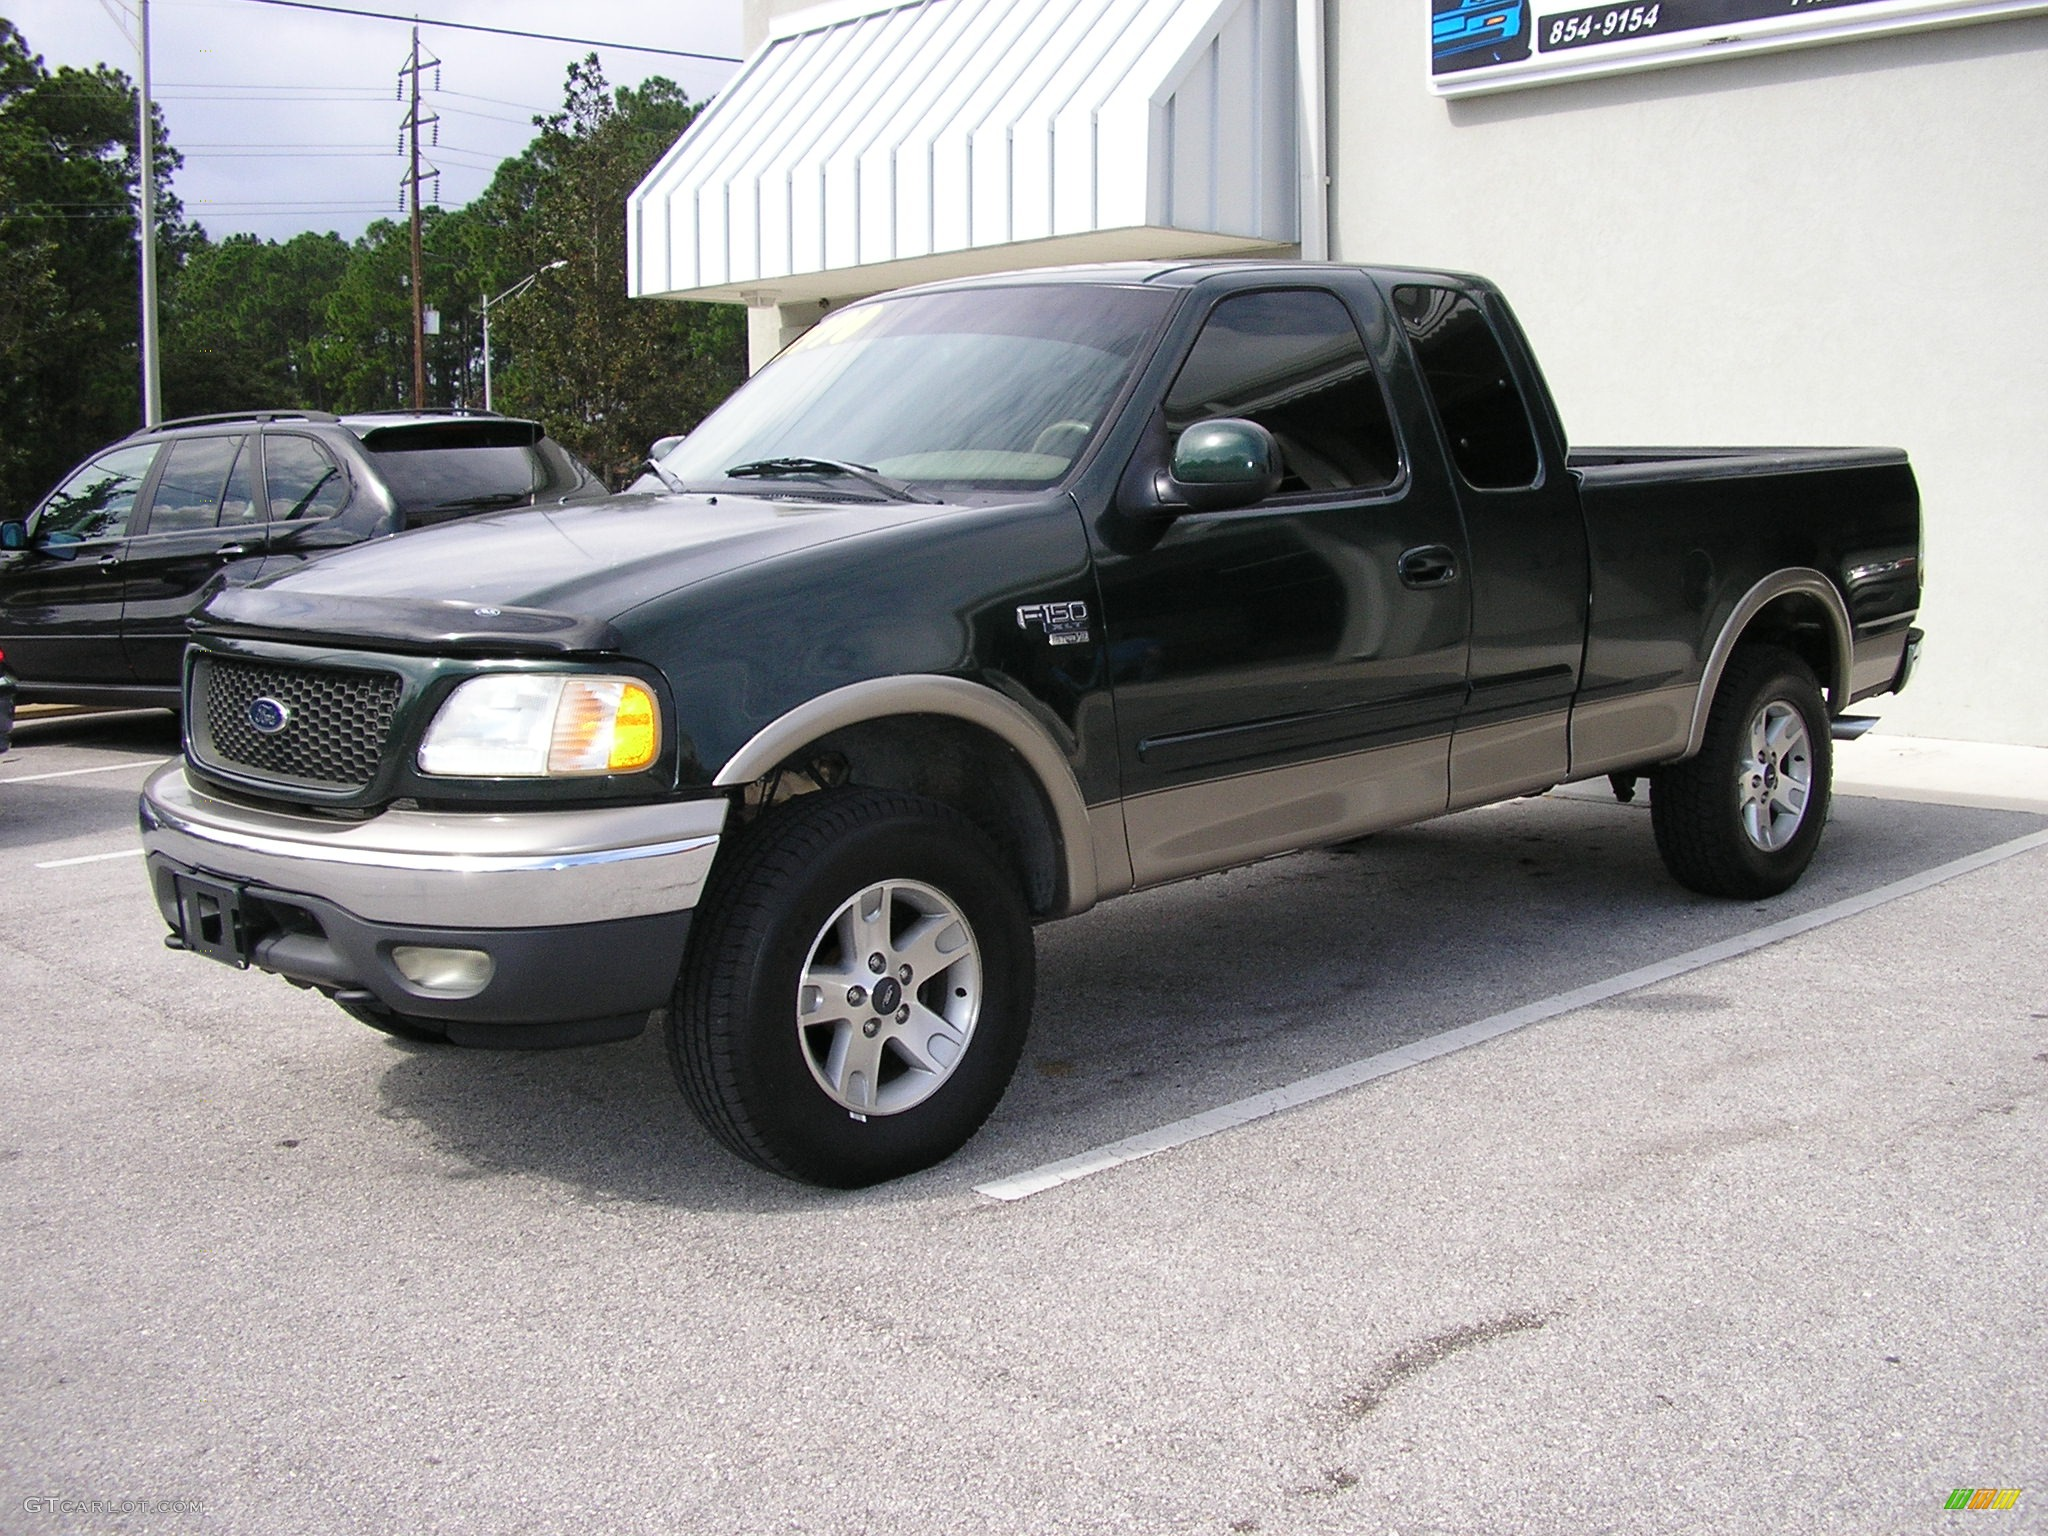 Ford F-150 2001 #6